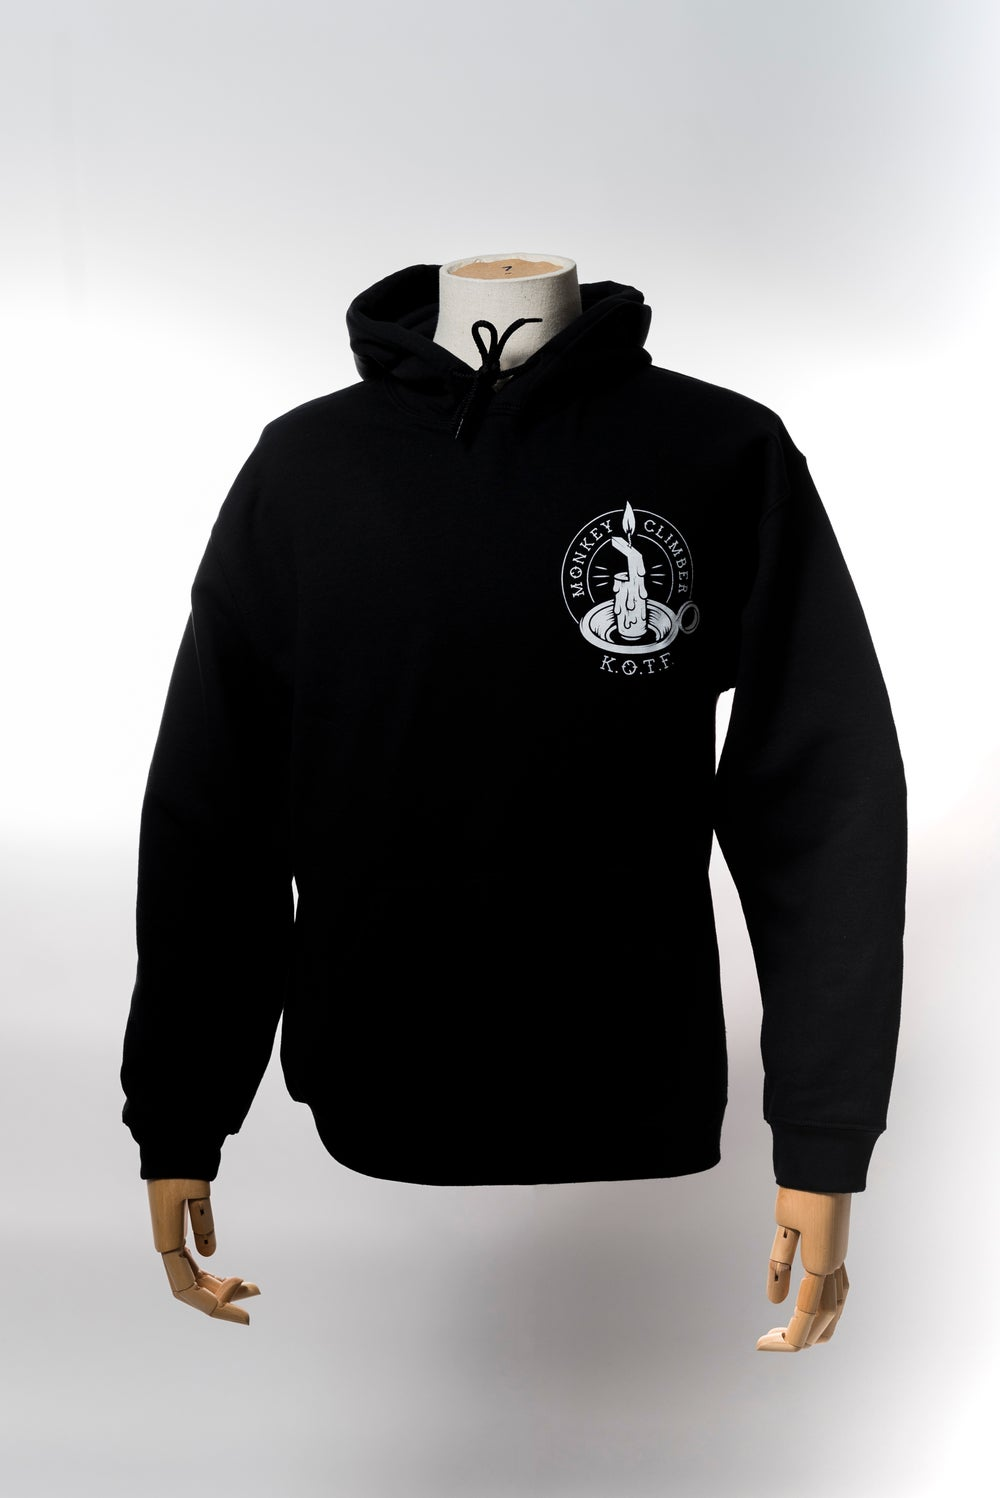 Image of Monkey Climber Keepers of the Faith hoodie I Black - Ash Grey